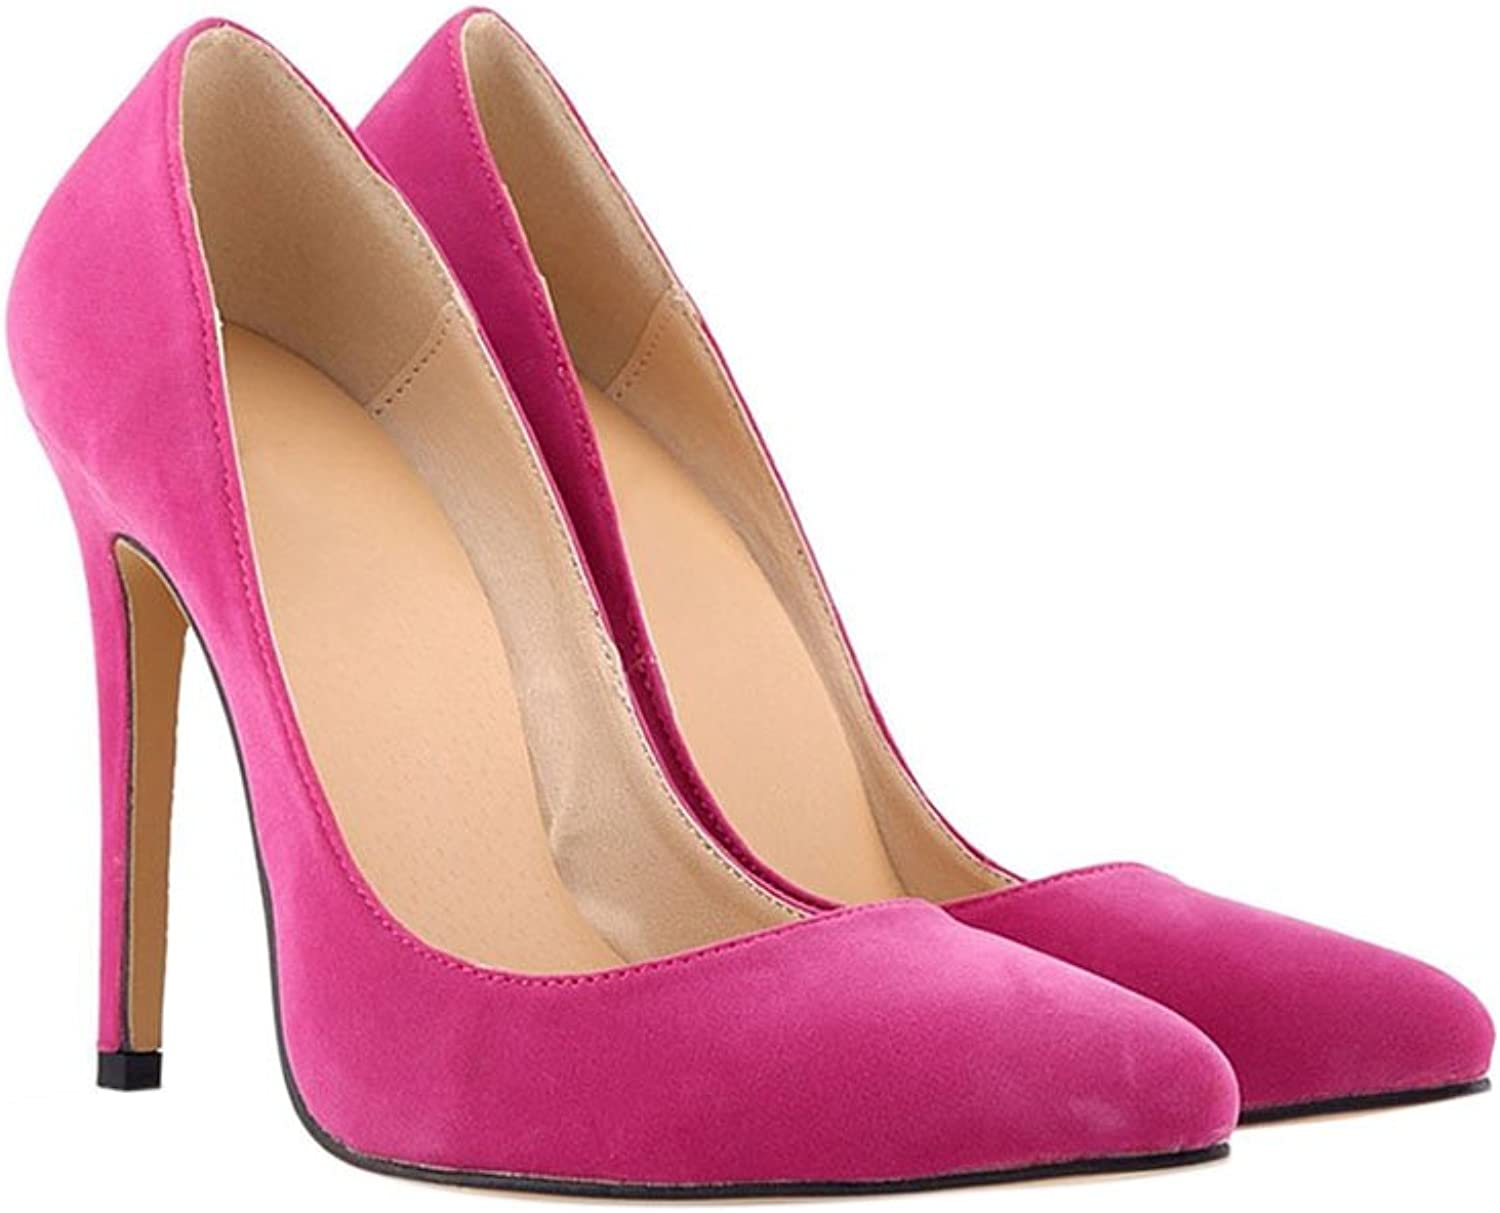 Meijunter Ladies 11CM High Heel Pointed Stiletto Suede Leather Classic Pumps shoes pink Red